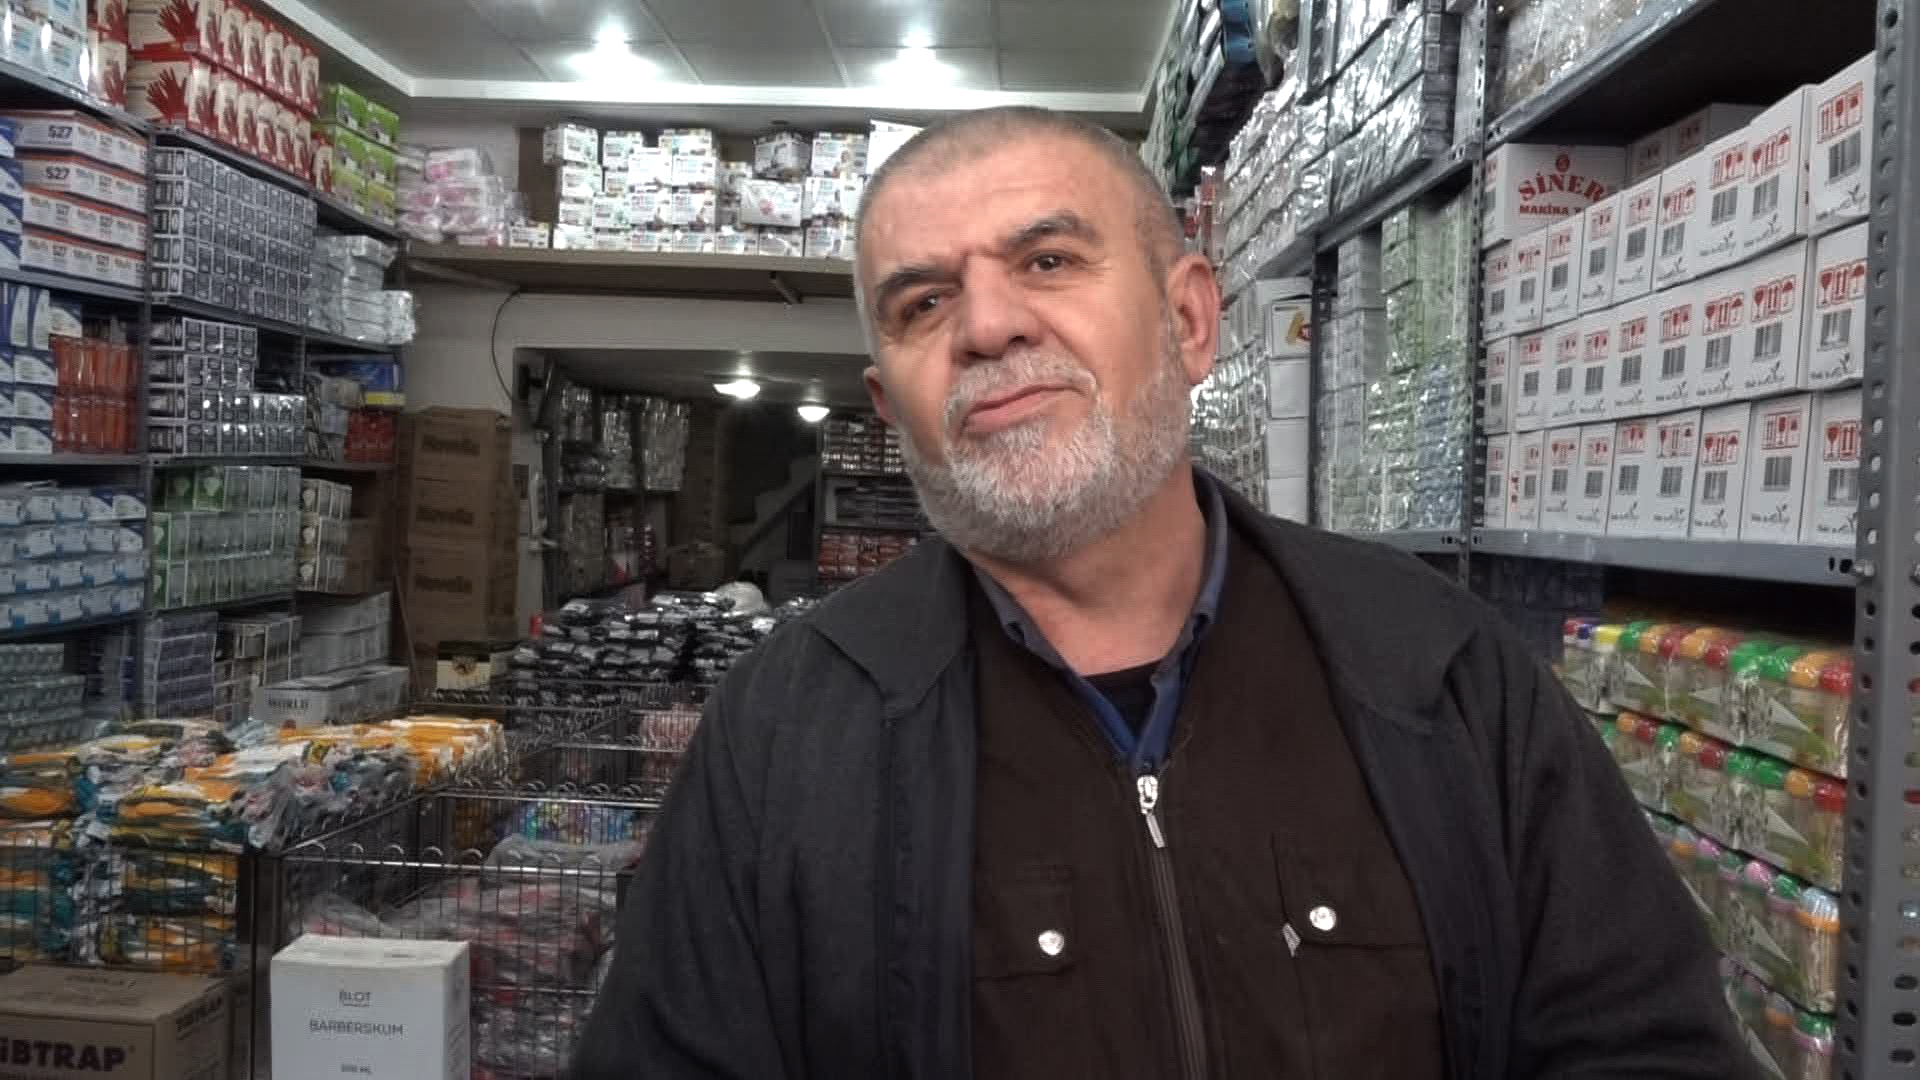 This Baglar trader says his business has suffered under the pro-Kurdish HDP and that he is ready to support the AKP.